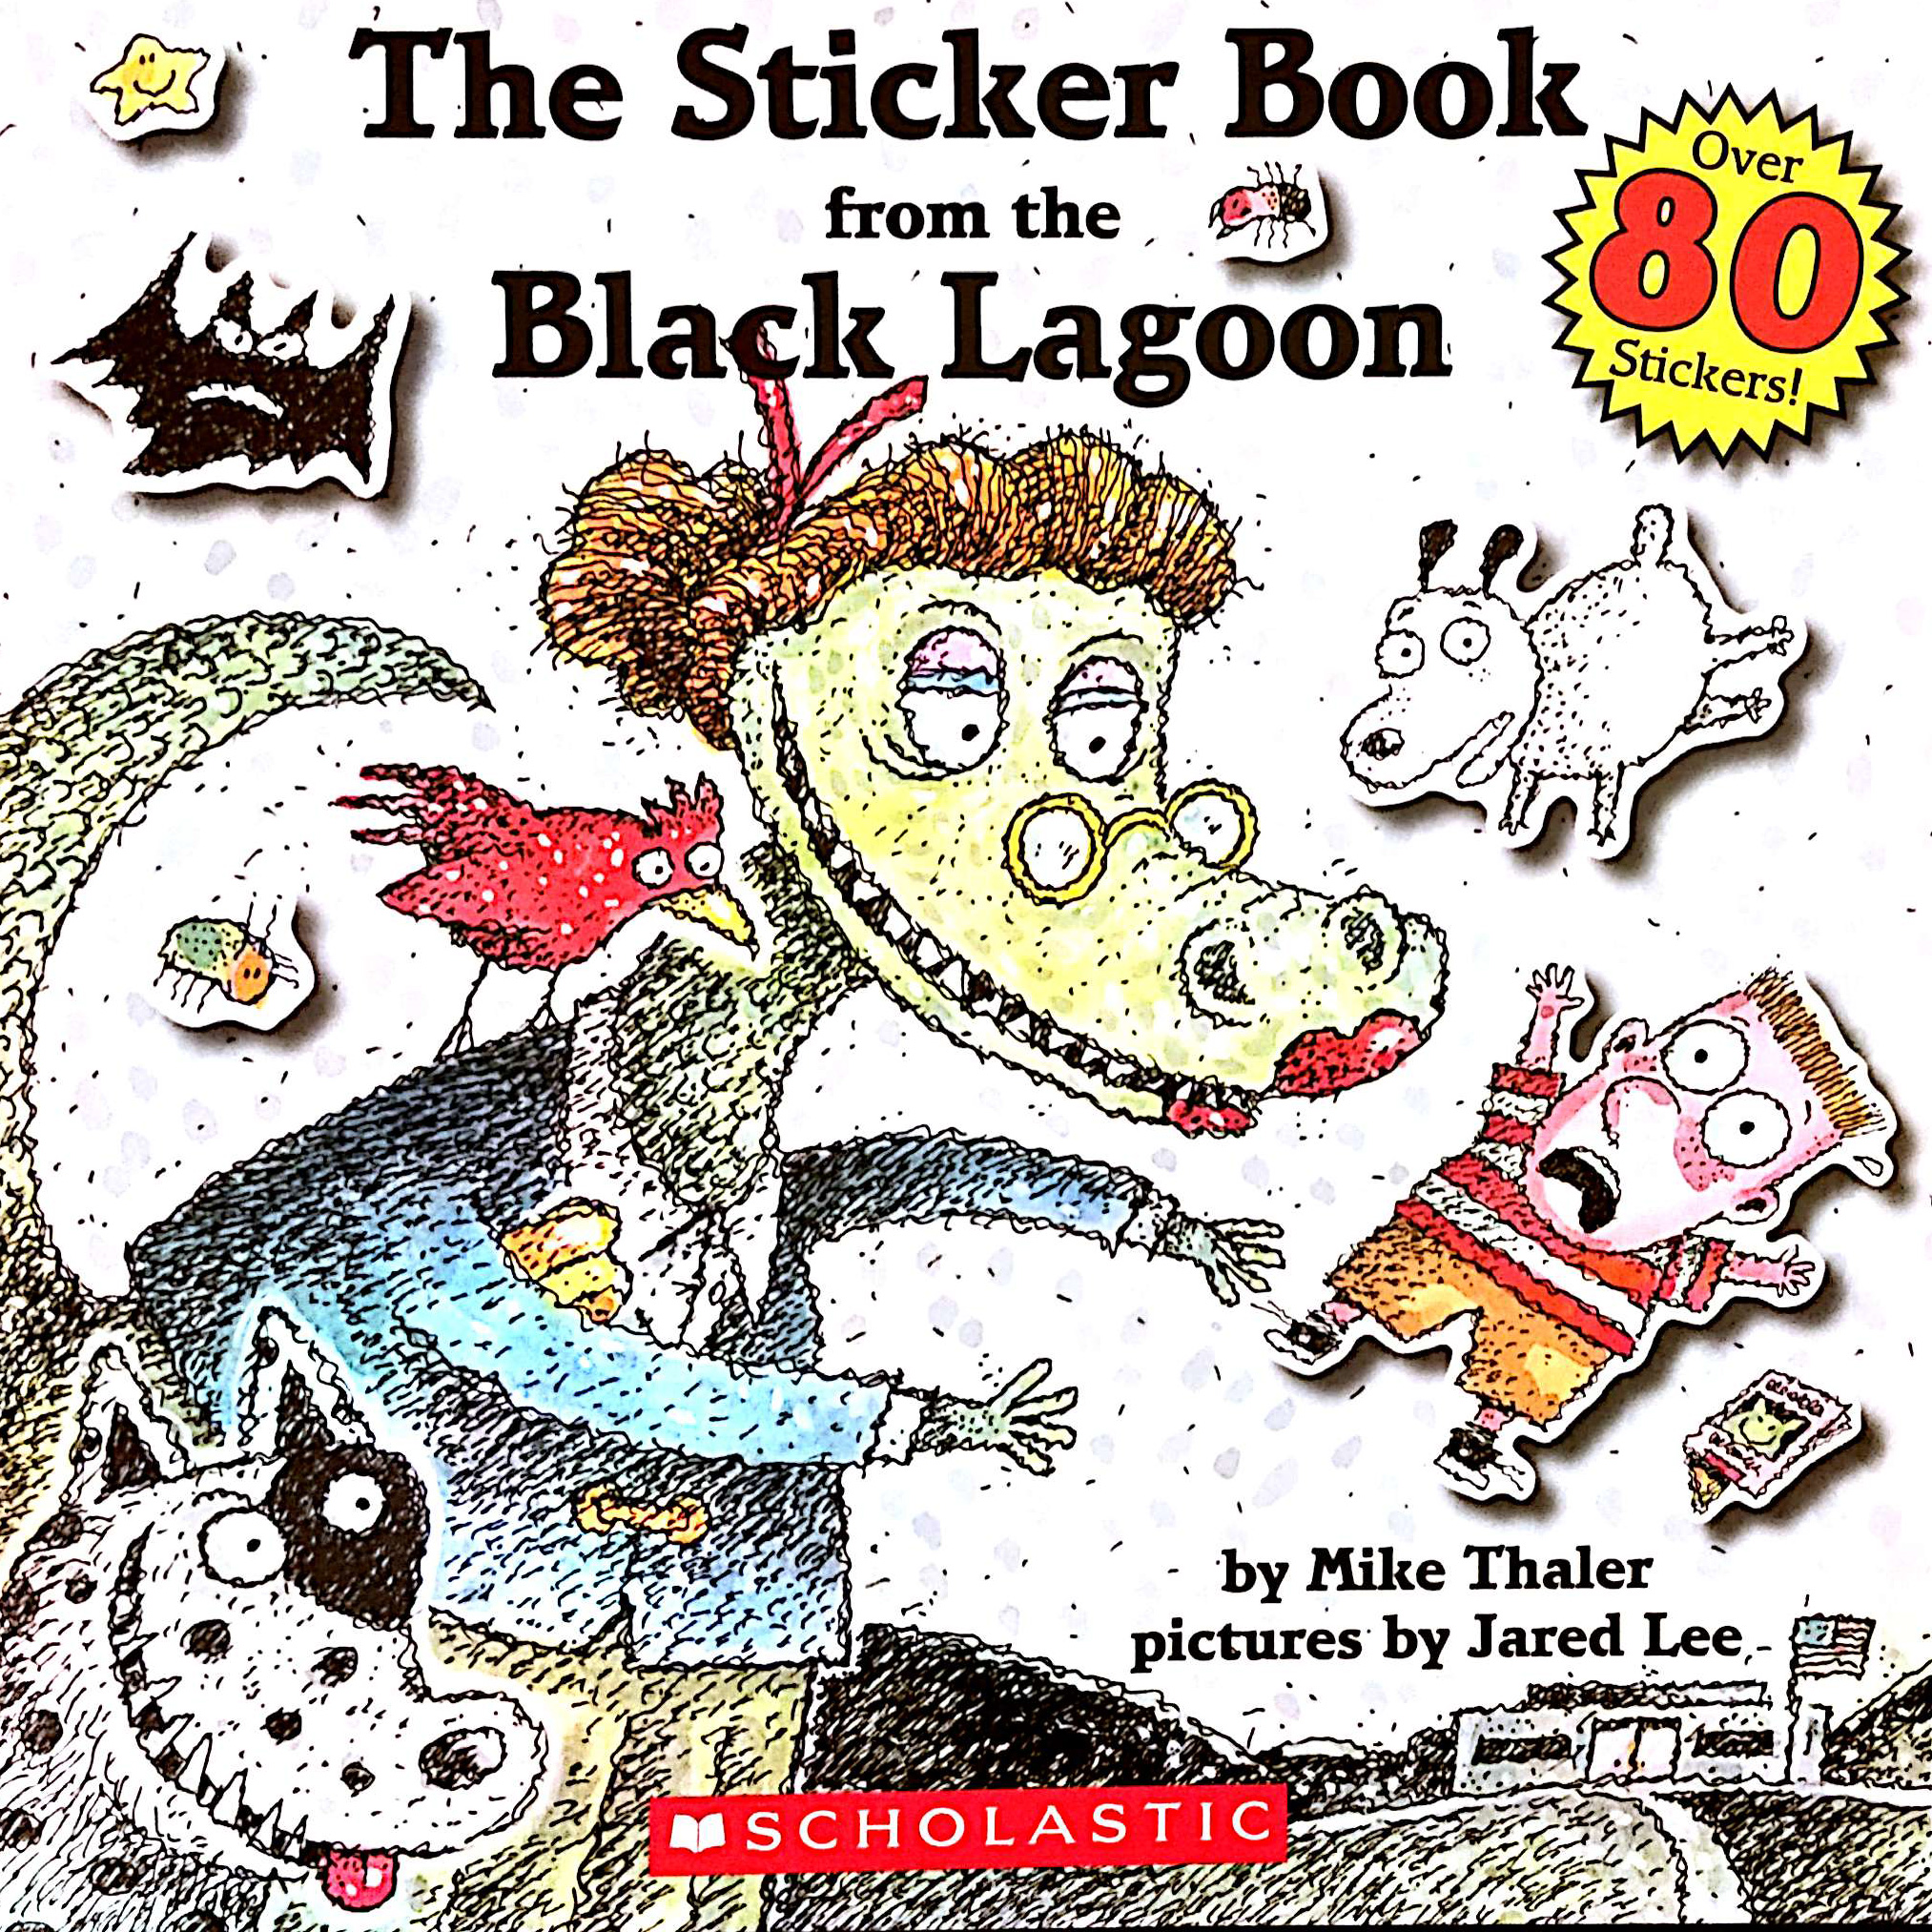 BL22-The-Stickerbook-from-the-Black-Lagoon